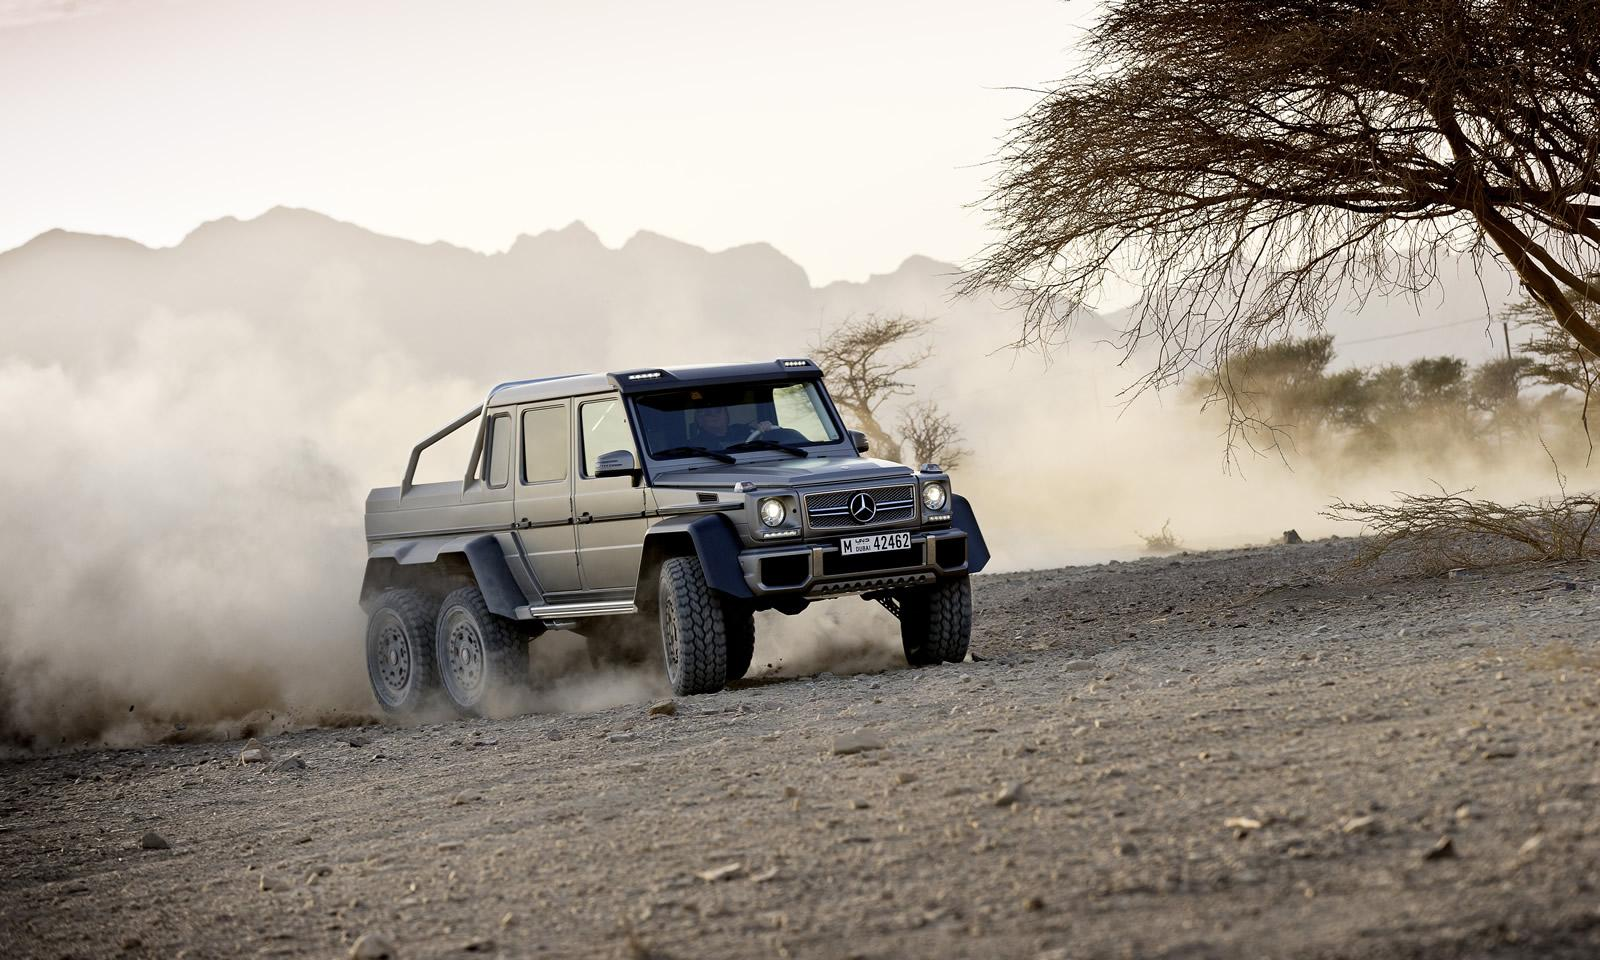 6x6 mercedes benz g63 amg pics aplenty autoevolution for Mercedes benz amg 6x6 price